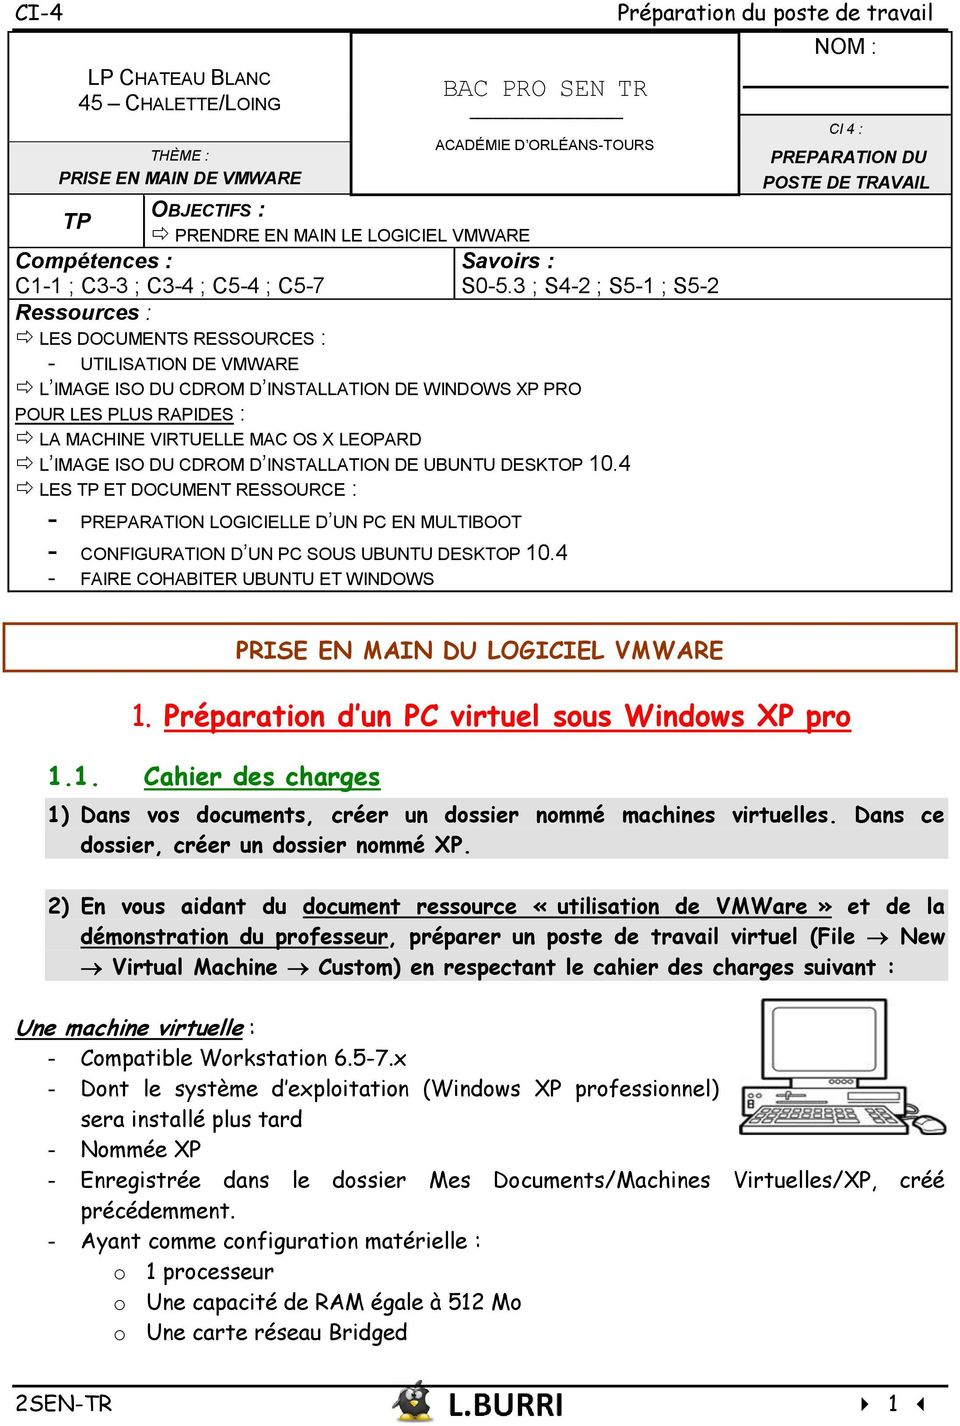 3 ; S4-2 ; S5-1 ; S5-2 Ressources : LES DOCUMENTS RESSOURCES : - UTILISATION DE VMWARE L IMAGE ISO DU CDROM D INSTALLATION DE WINDOWS P PRO POUR LES PLUS RAPIDES : LA MACHINE VIRTUELLE MAC OS LEOPARD